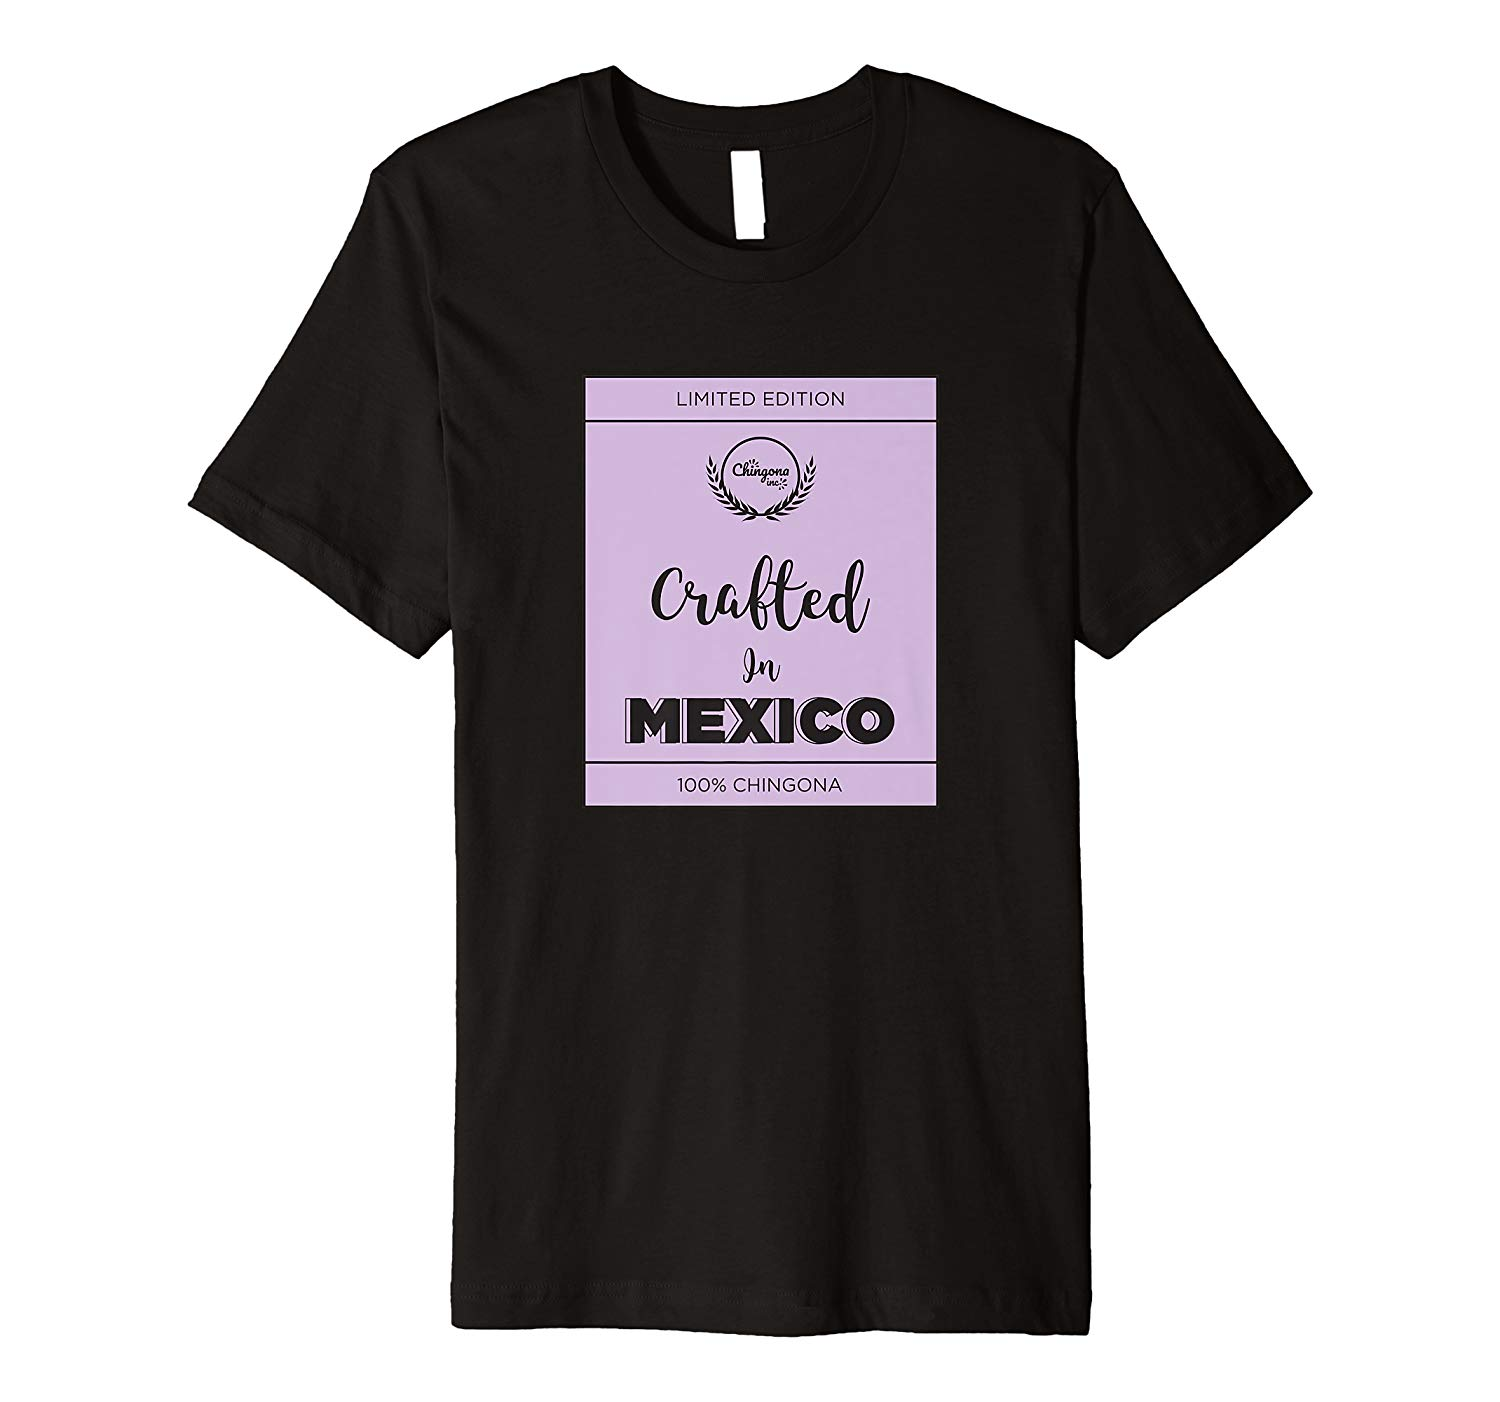 Crafted In Mexico Premium T Shirt